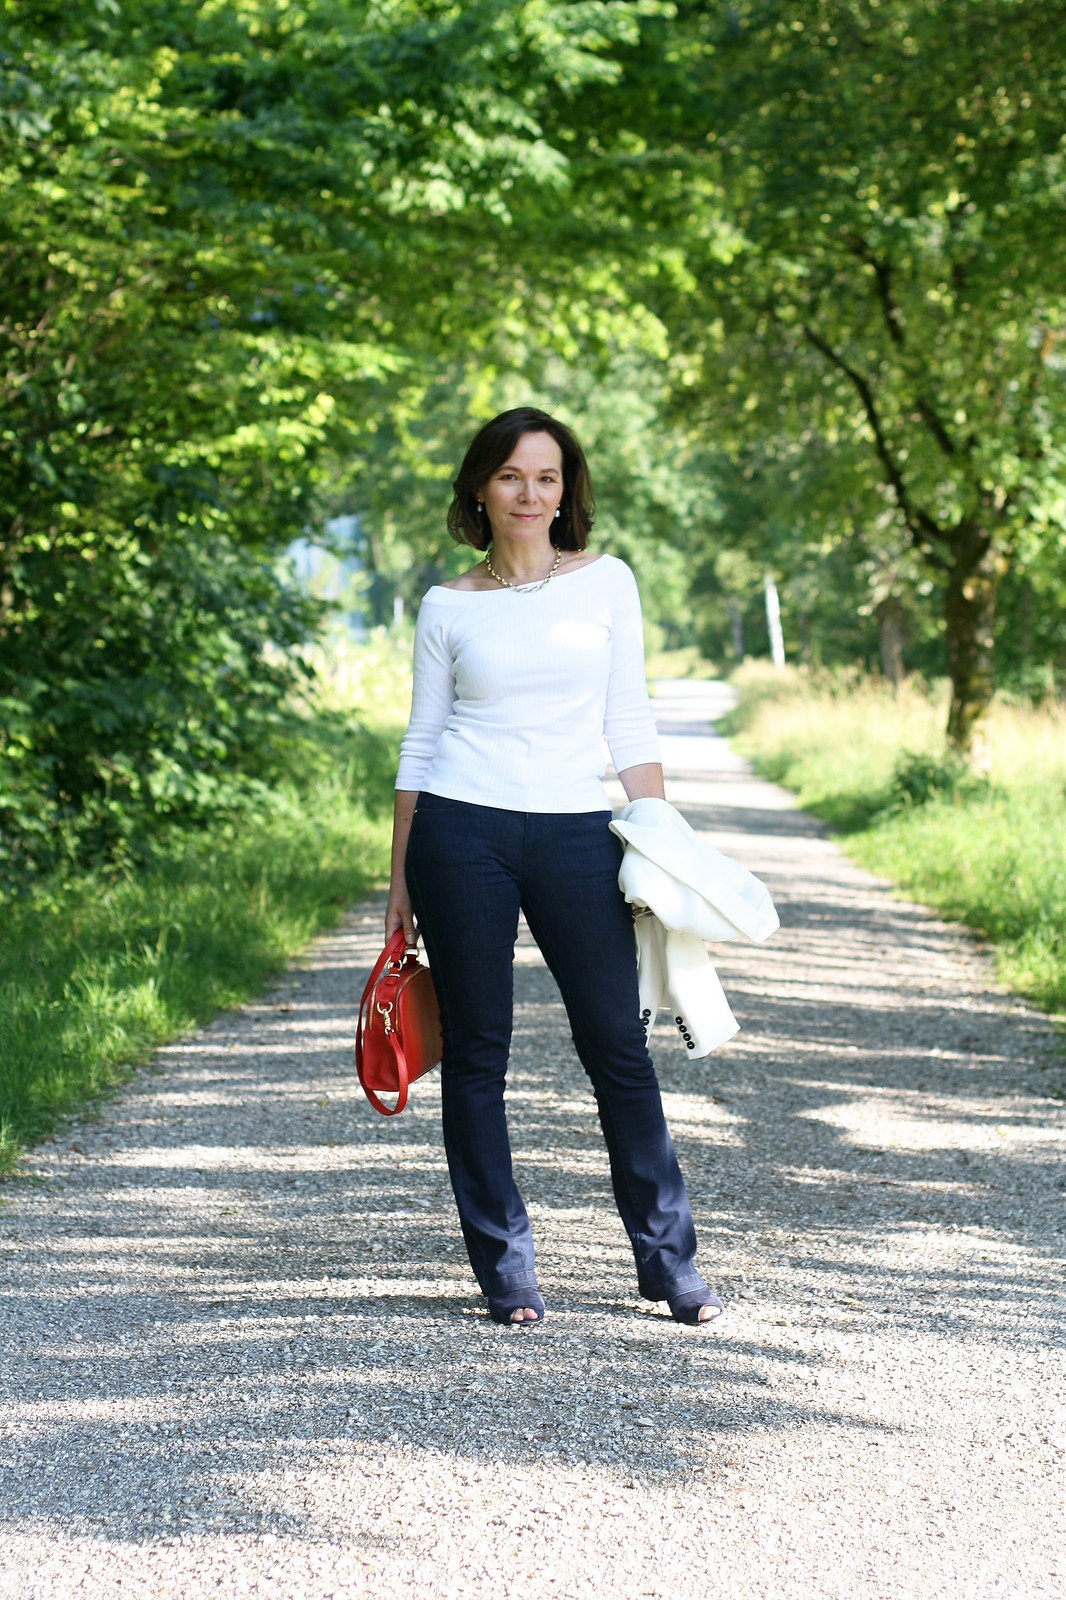 Styling a basic white top and denim: Marks & Spencer challenge - Annette, Lady of Style